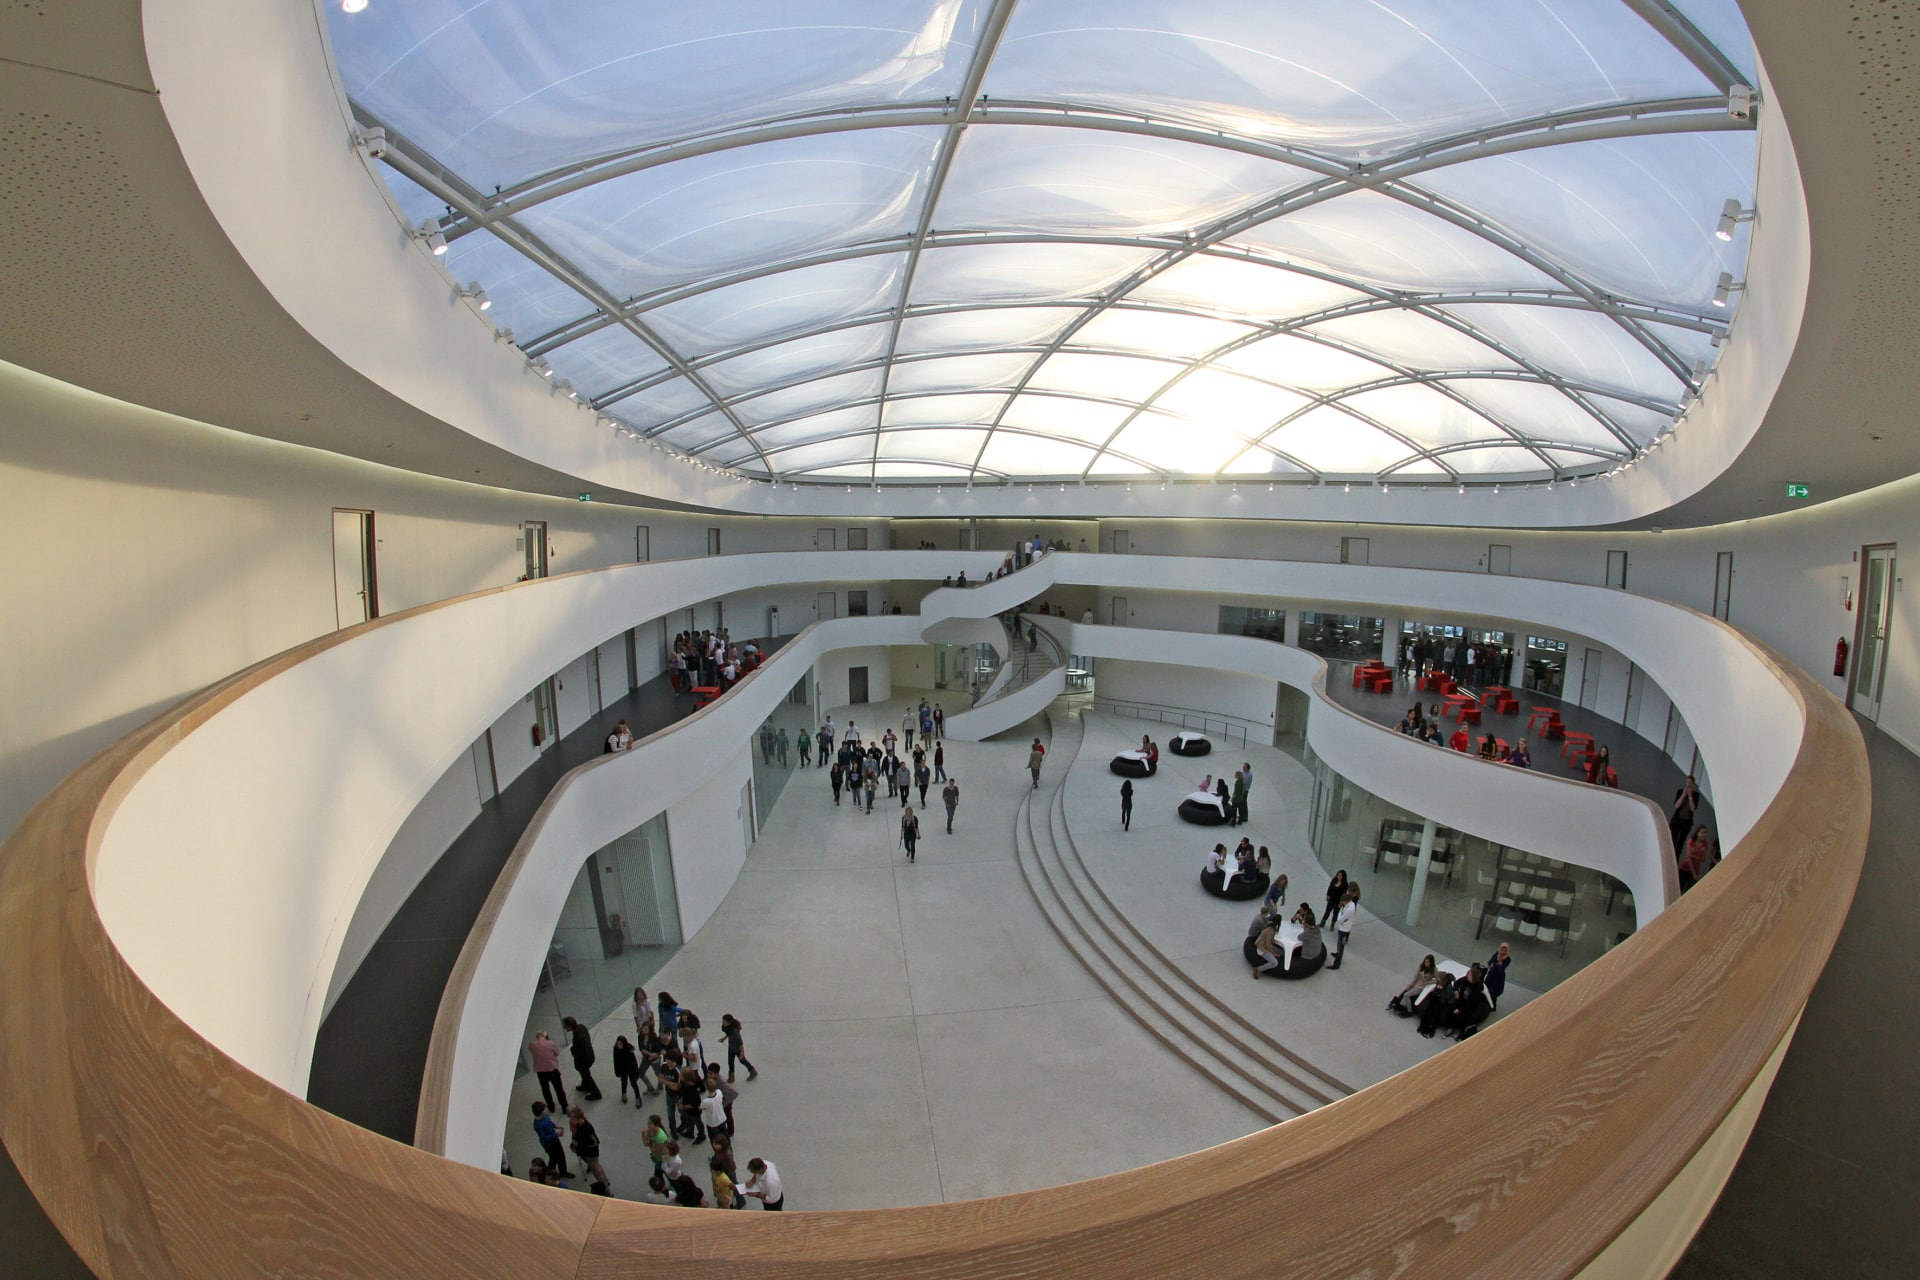 In 2012, Vector Foiltec was contracted to install a sustainable Texlon® ETFE roof over one of the school's atriums.